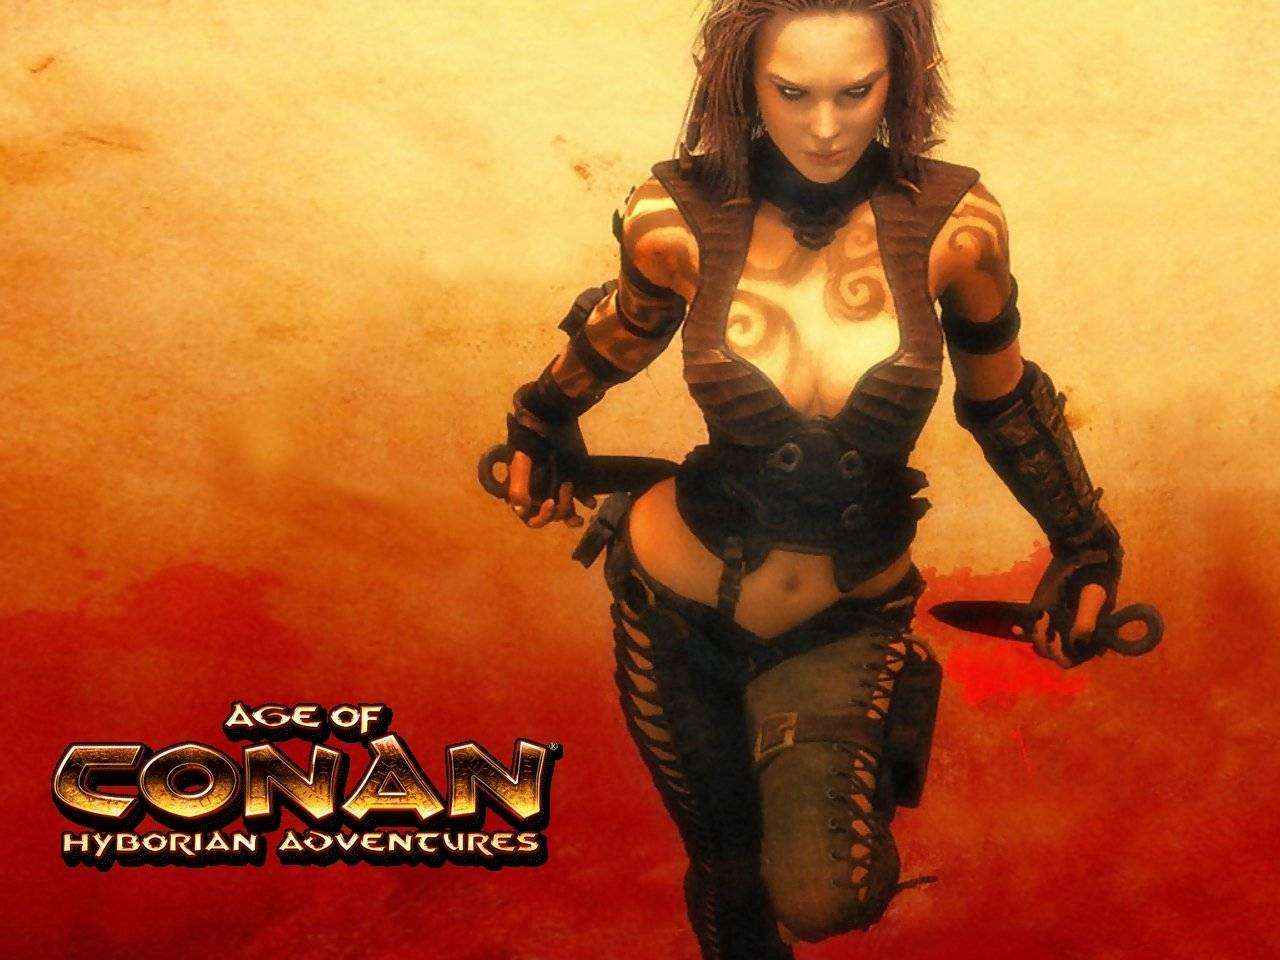 Wallpapers de Age of Conan 1280x960